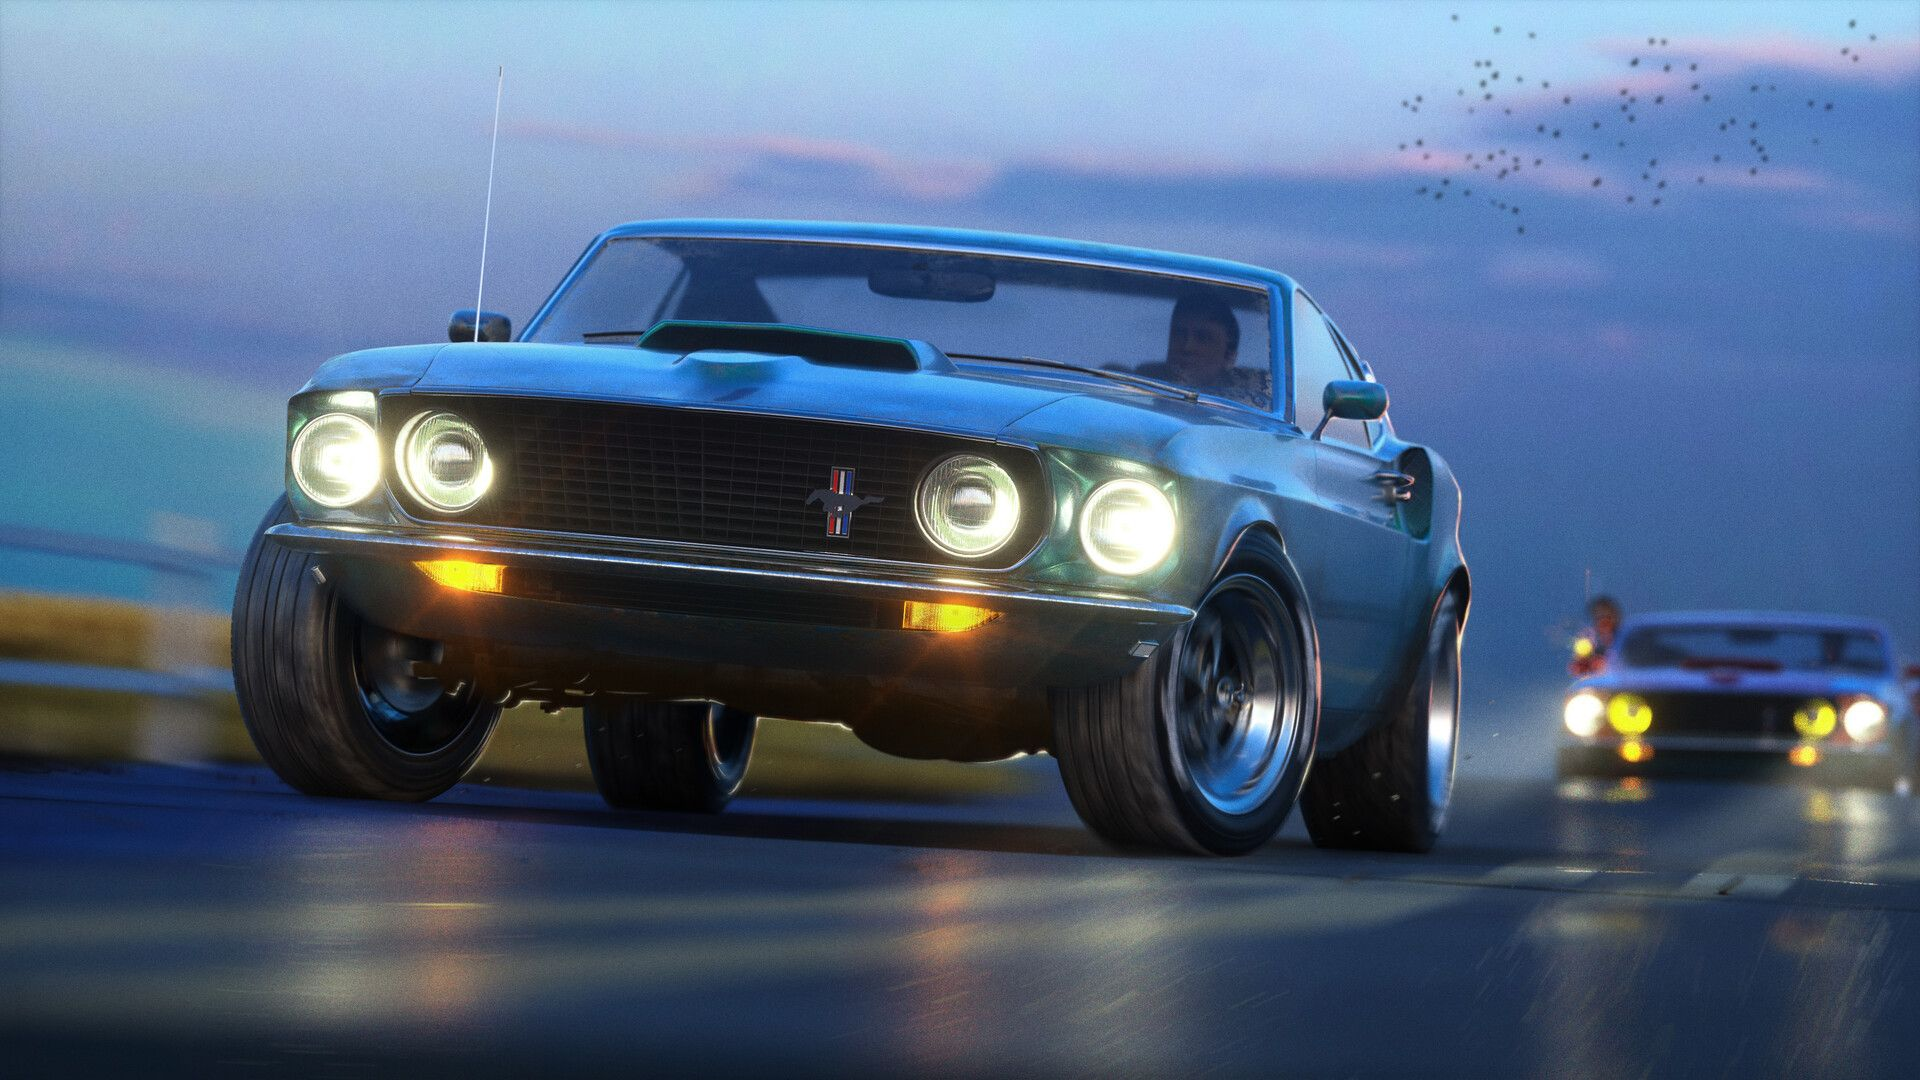 Mustang Chase By Serj Rumimy Personal Project Inspired With